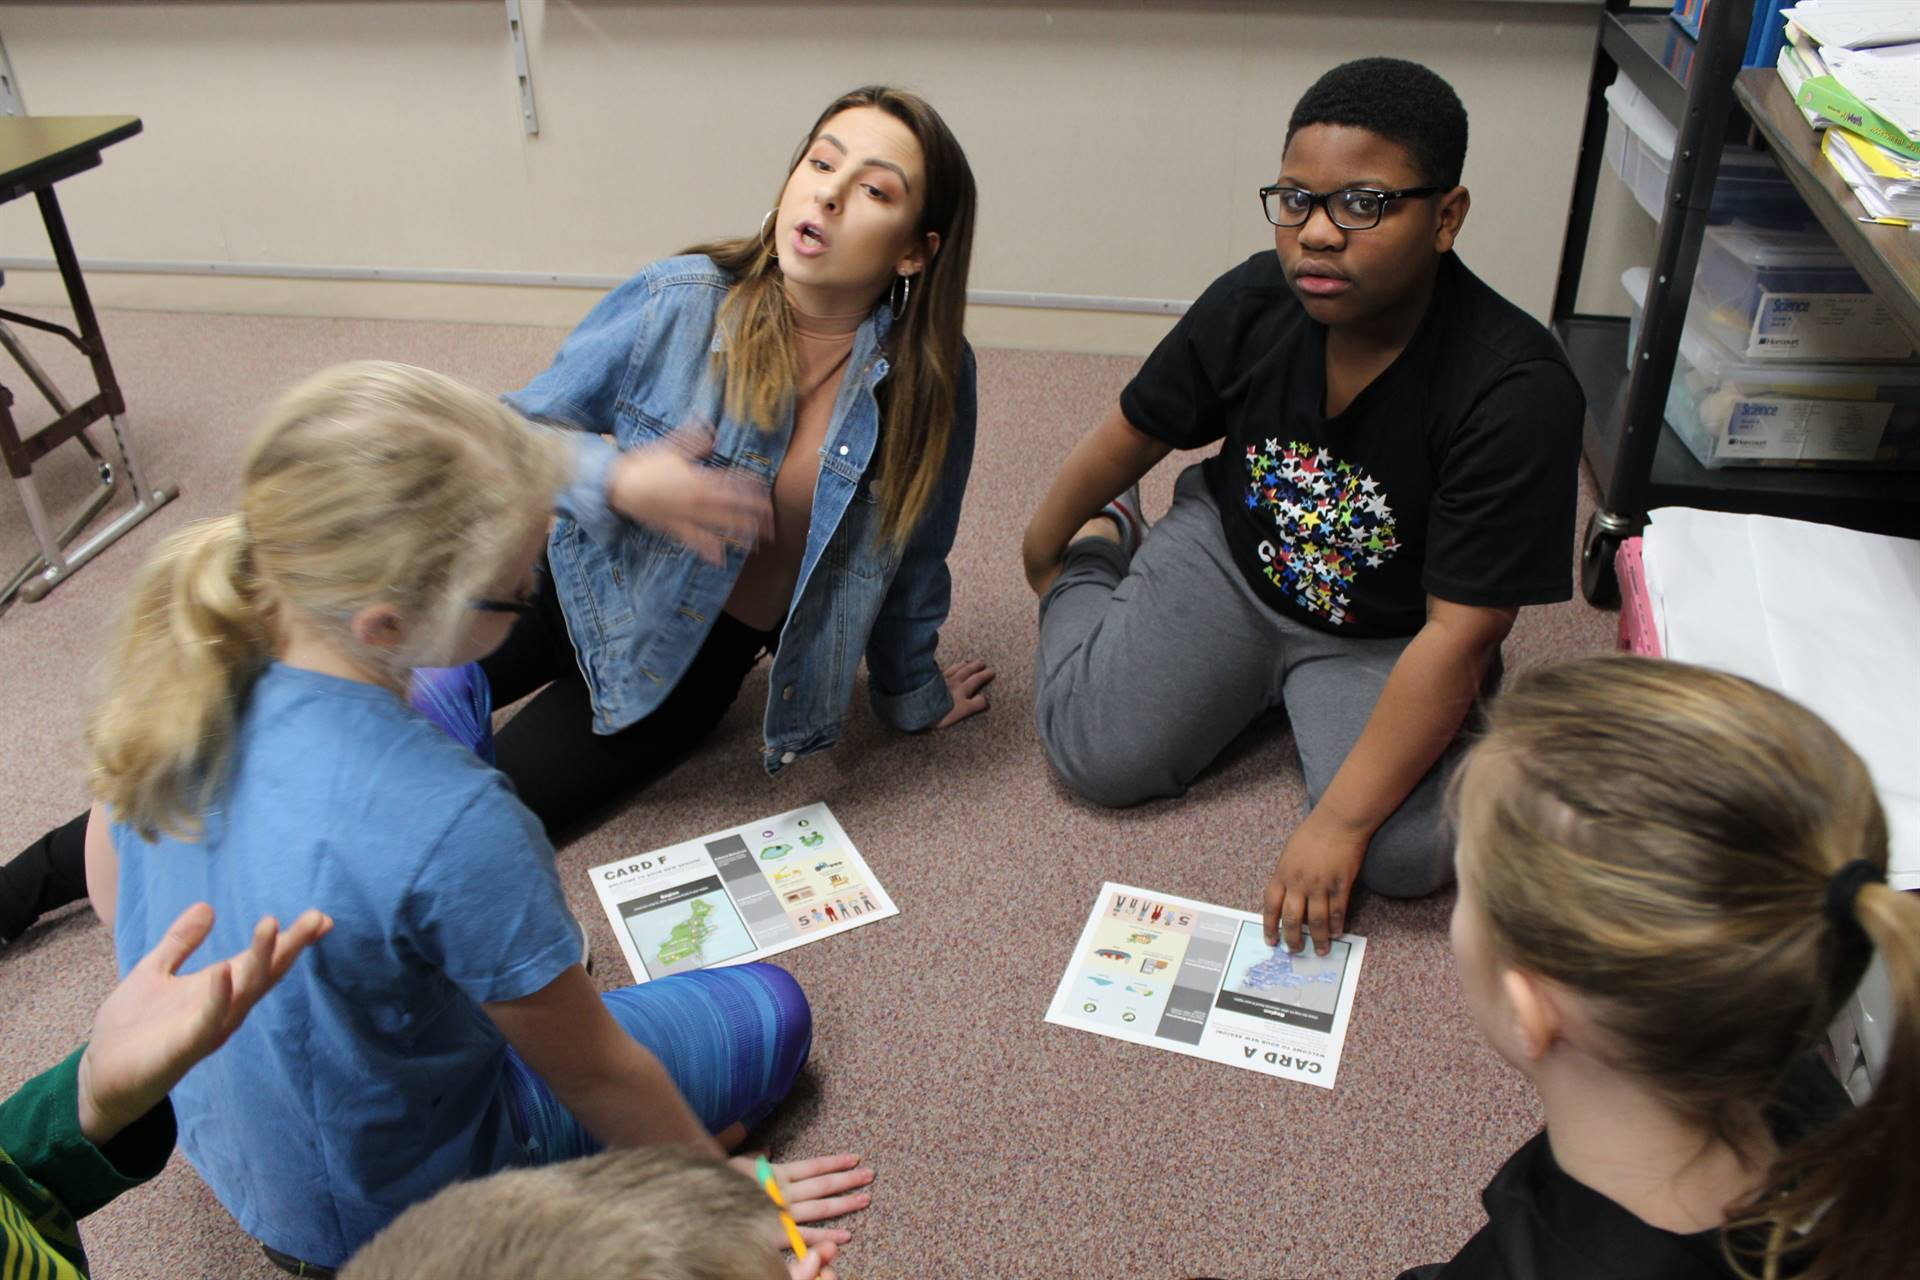 BPHS student working with Franklin students on an activity